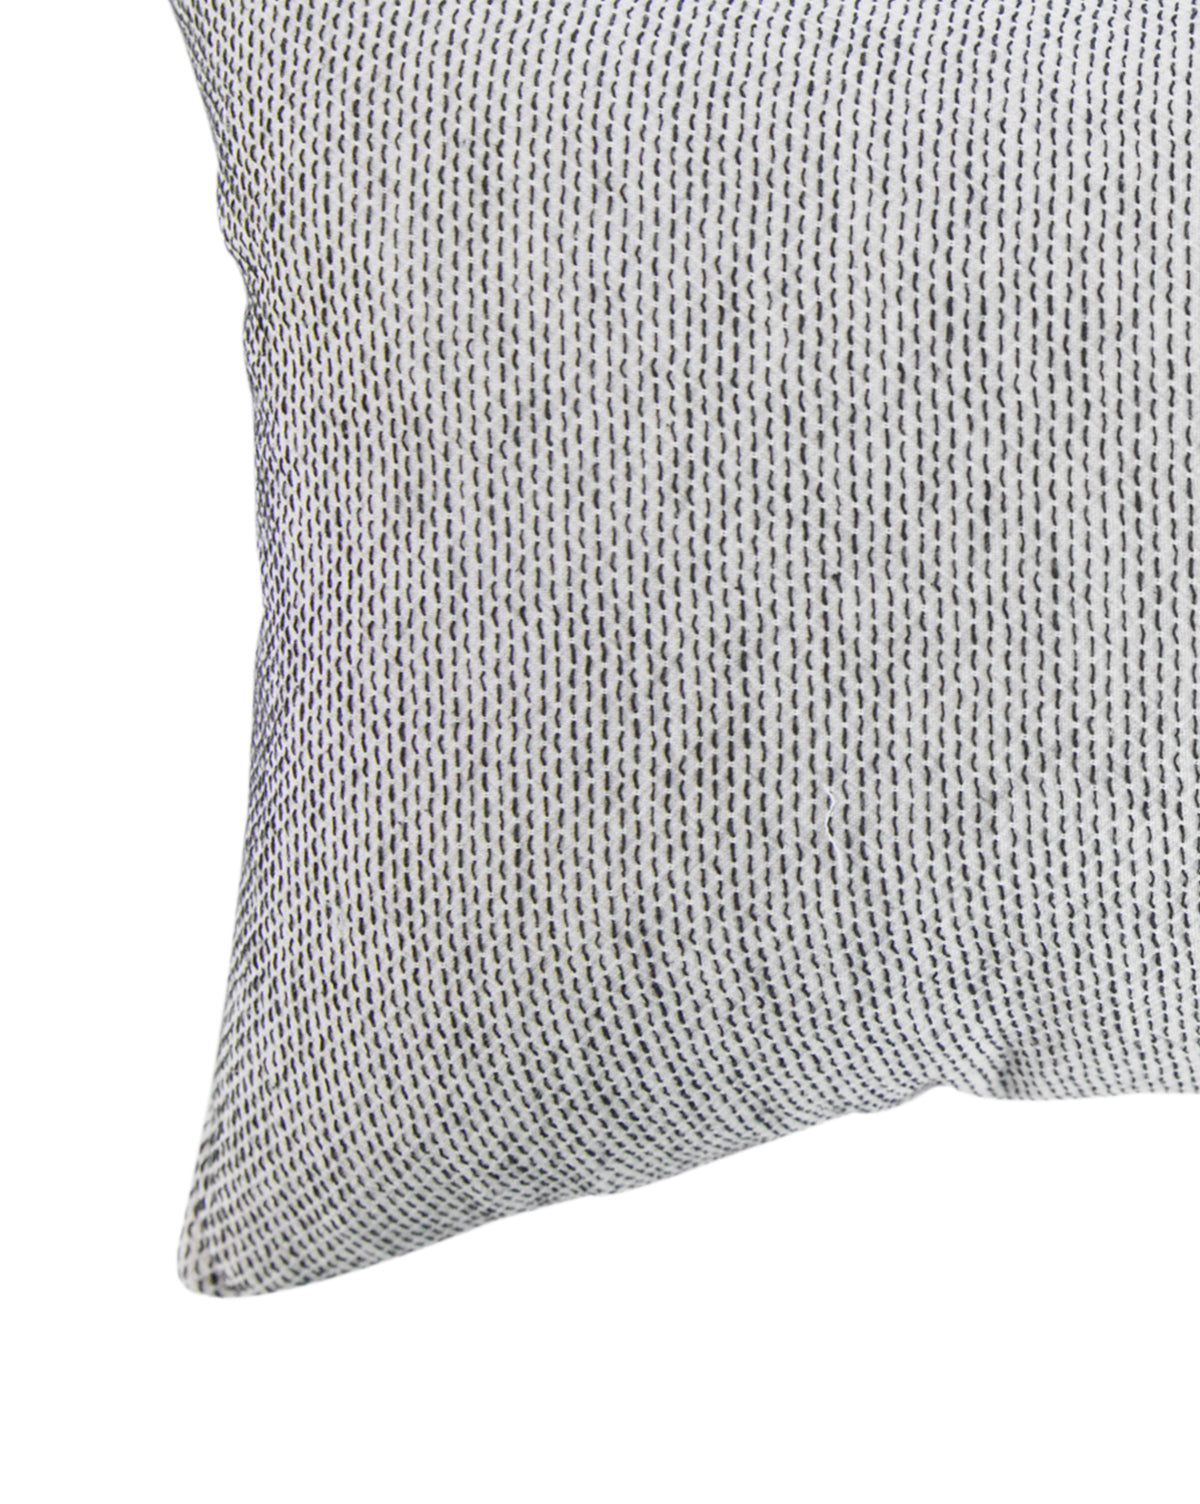 Ankia Pillow